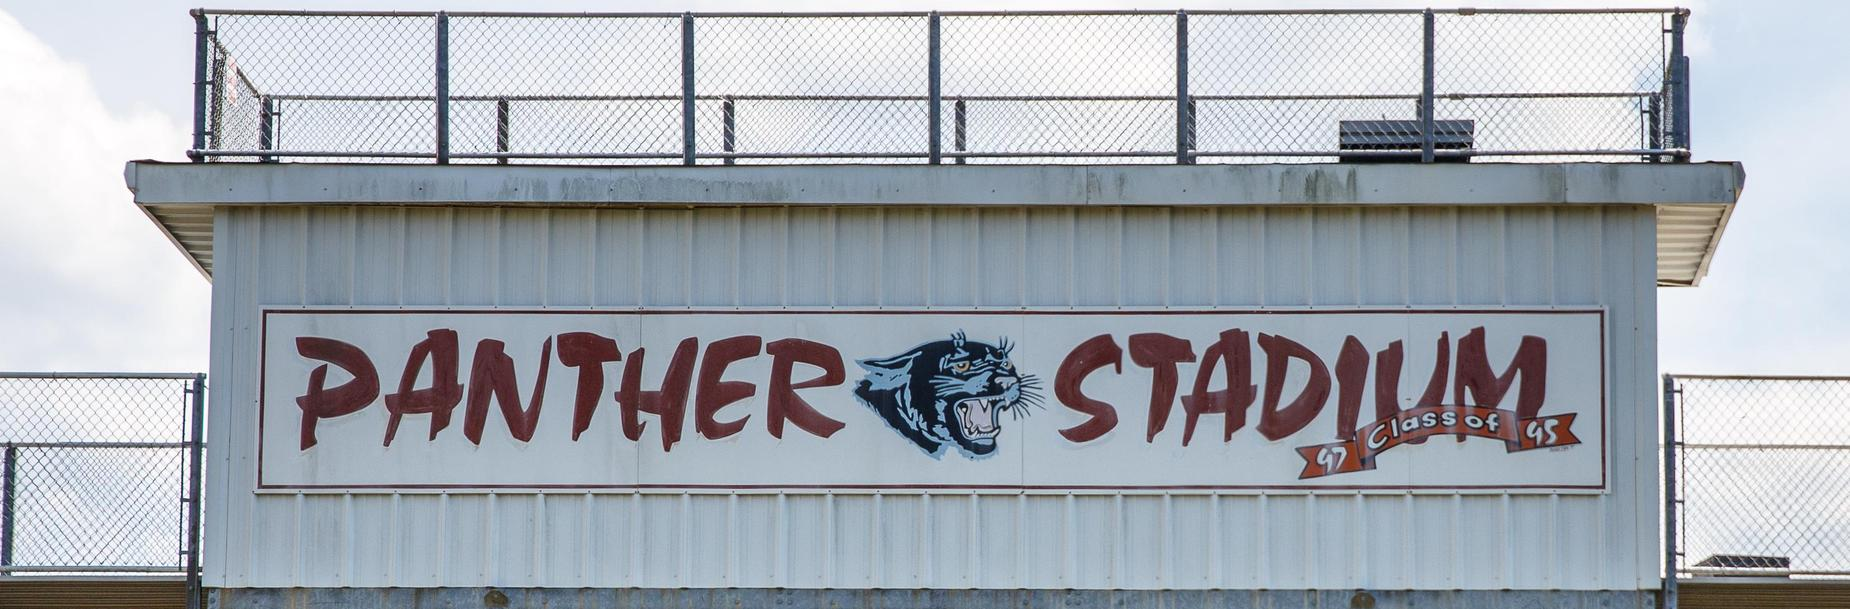 Picture of Panther Stadium